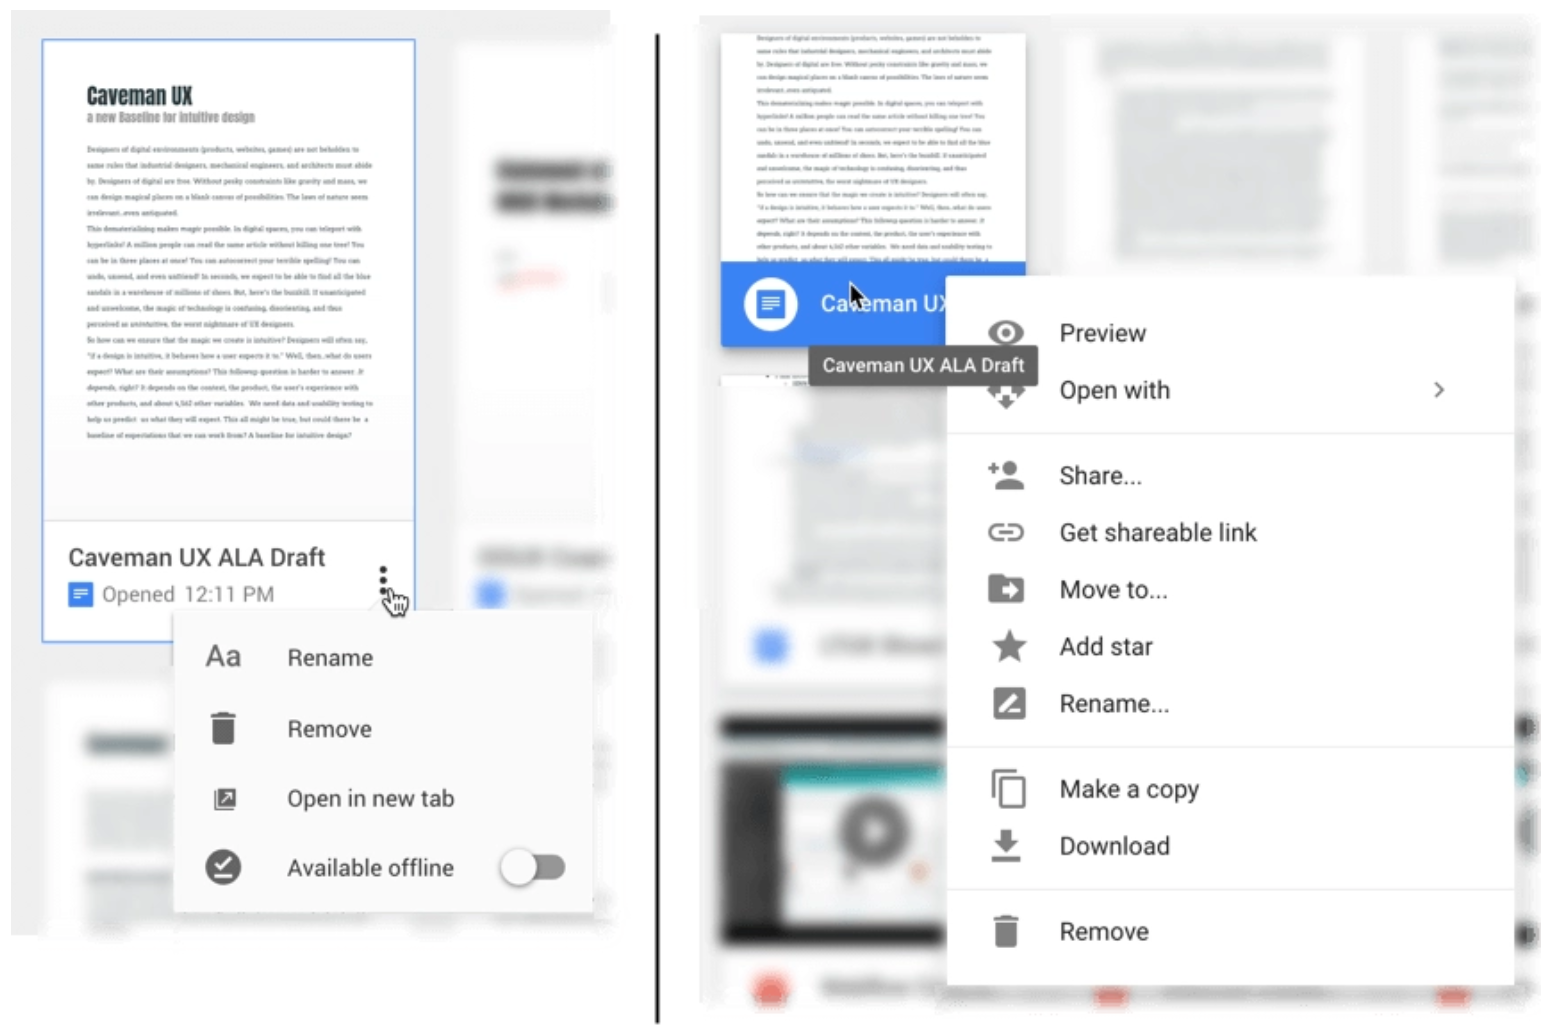 Different menu options in Google Docs and Google Drive.